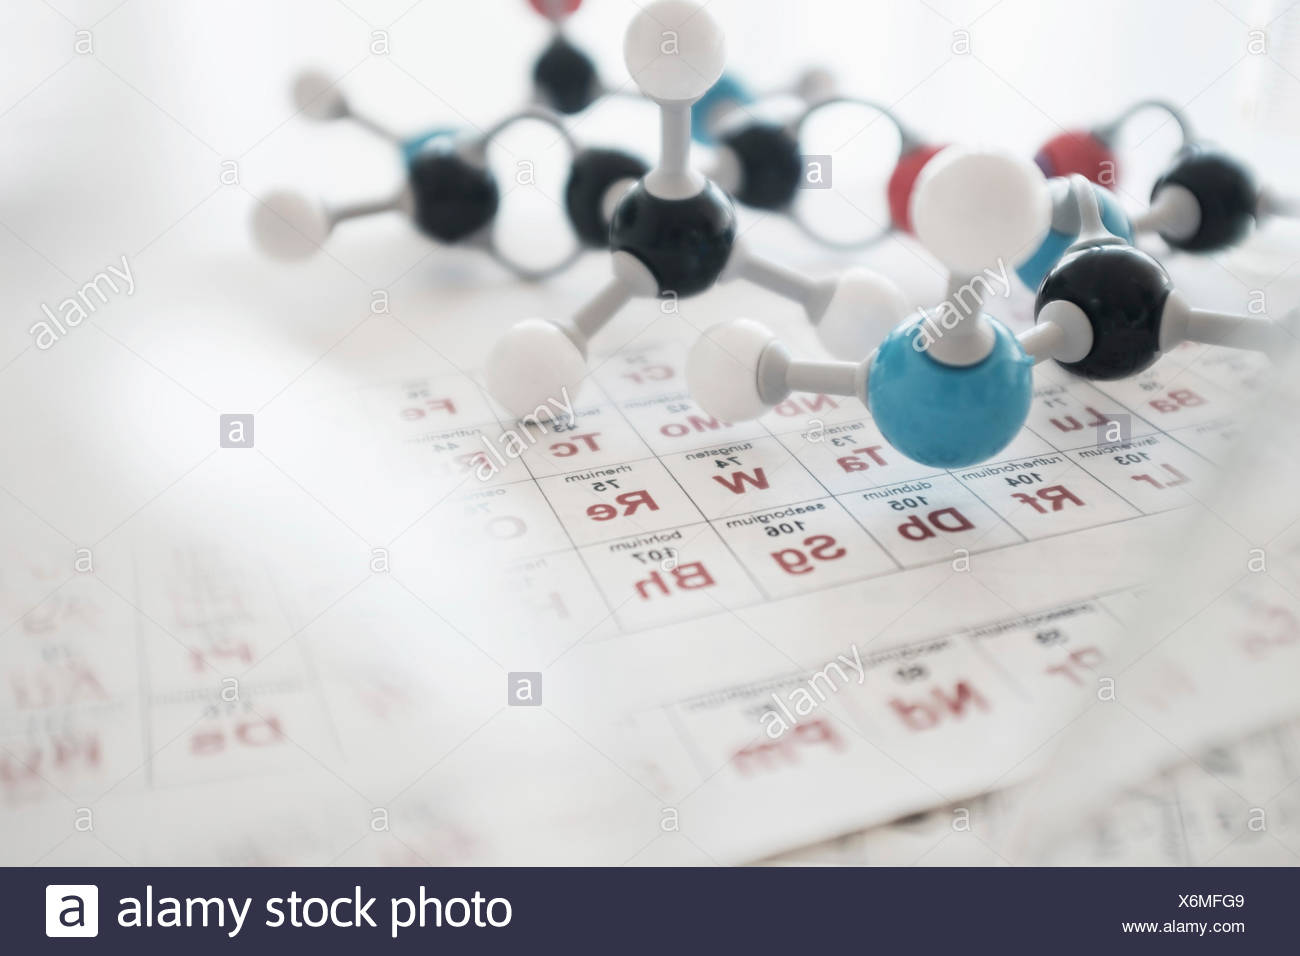 Groovy Molecular Structure And Periodic Table On Desk Stock Photo Beutiful Home Inspiration Truamahrainfo